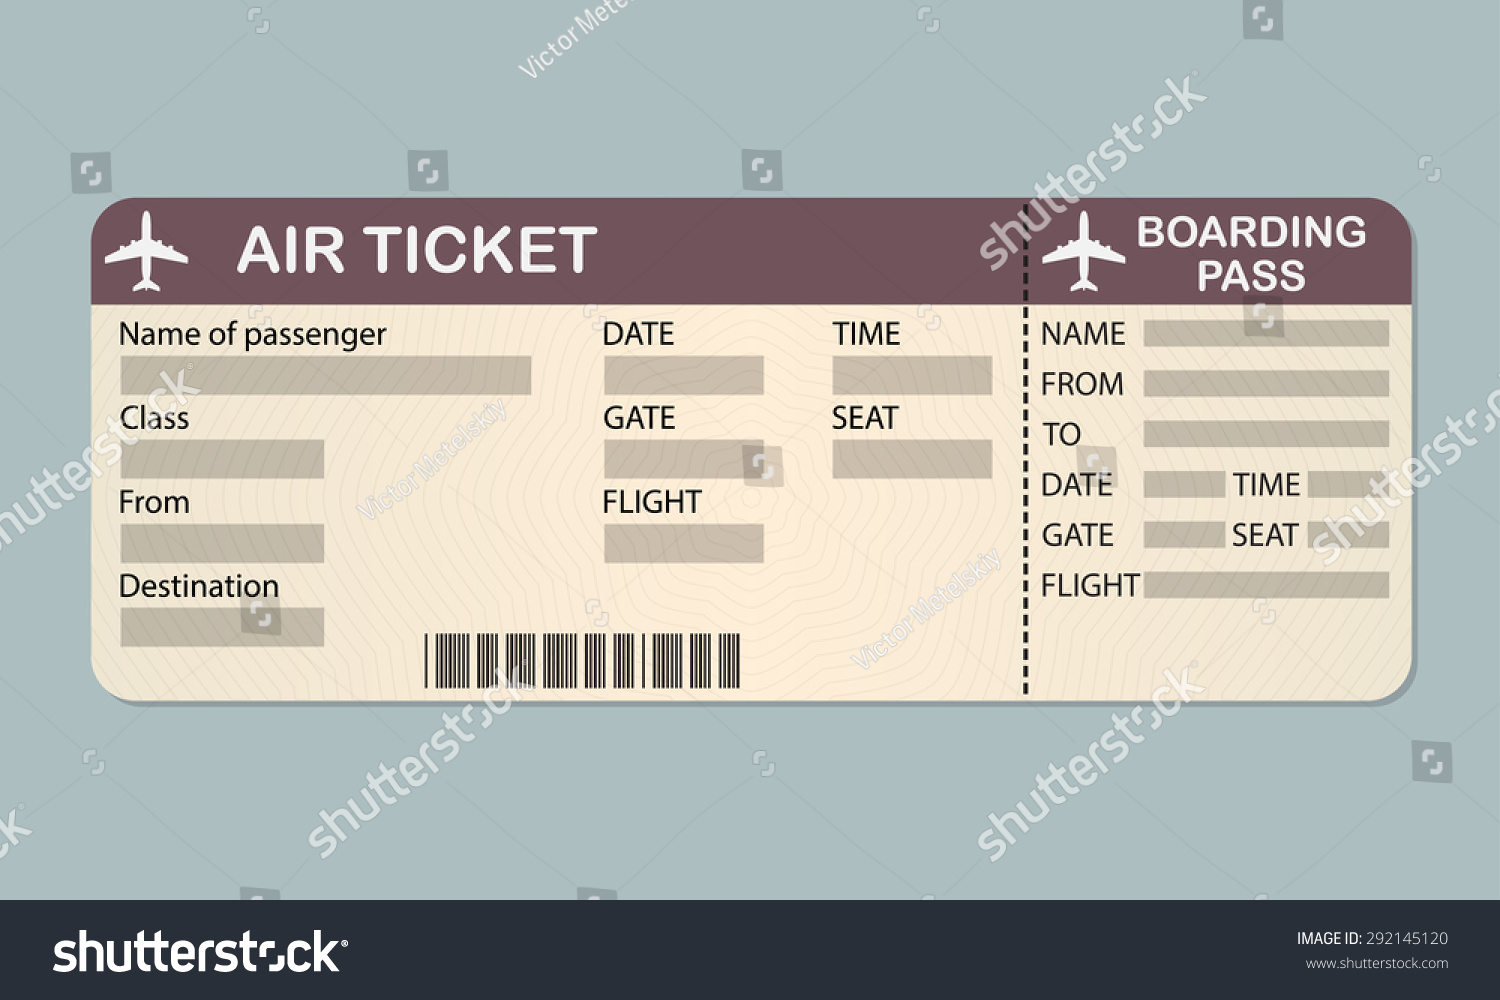 Ticket Boarding Pass Template - Bing images